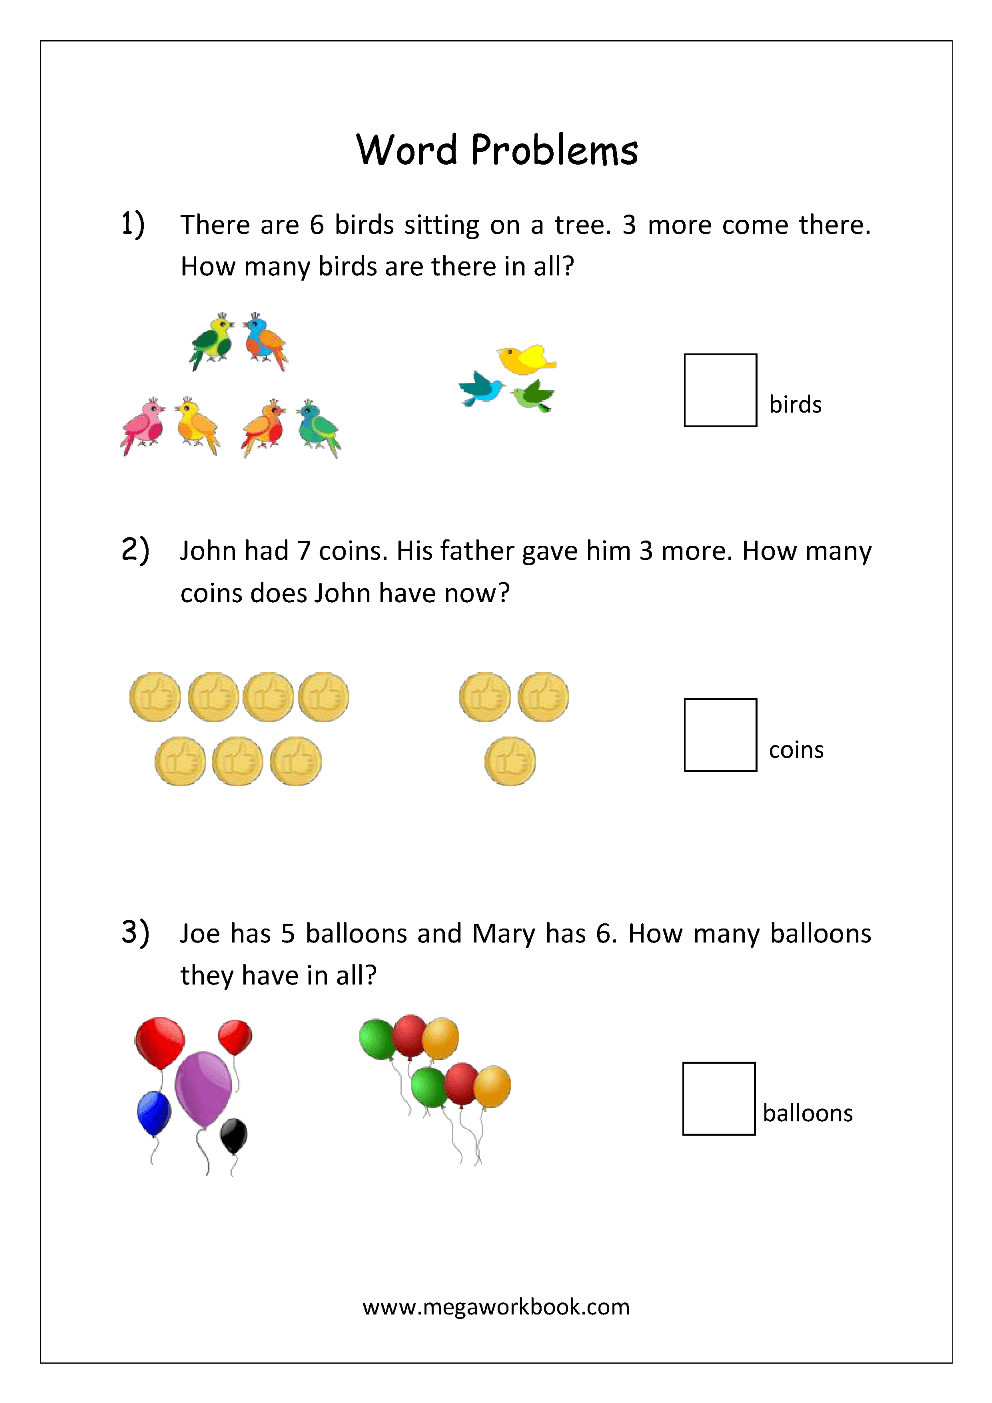 hight resolution of Addition and Subtraction Word Problems Worksheets For Kindergarten and  Grade 1 - Story Sums - Story Problems - MegaWorkbook